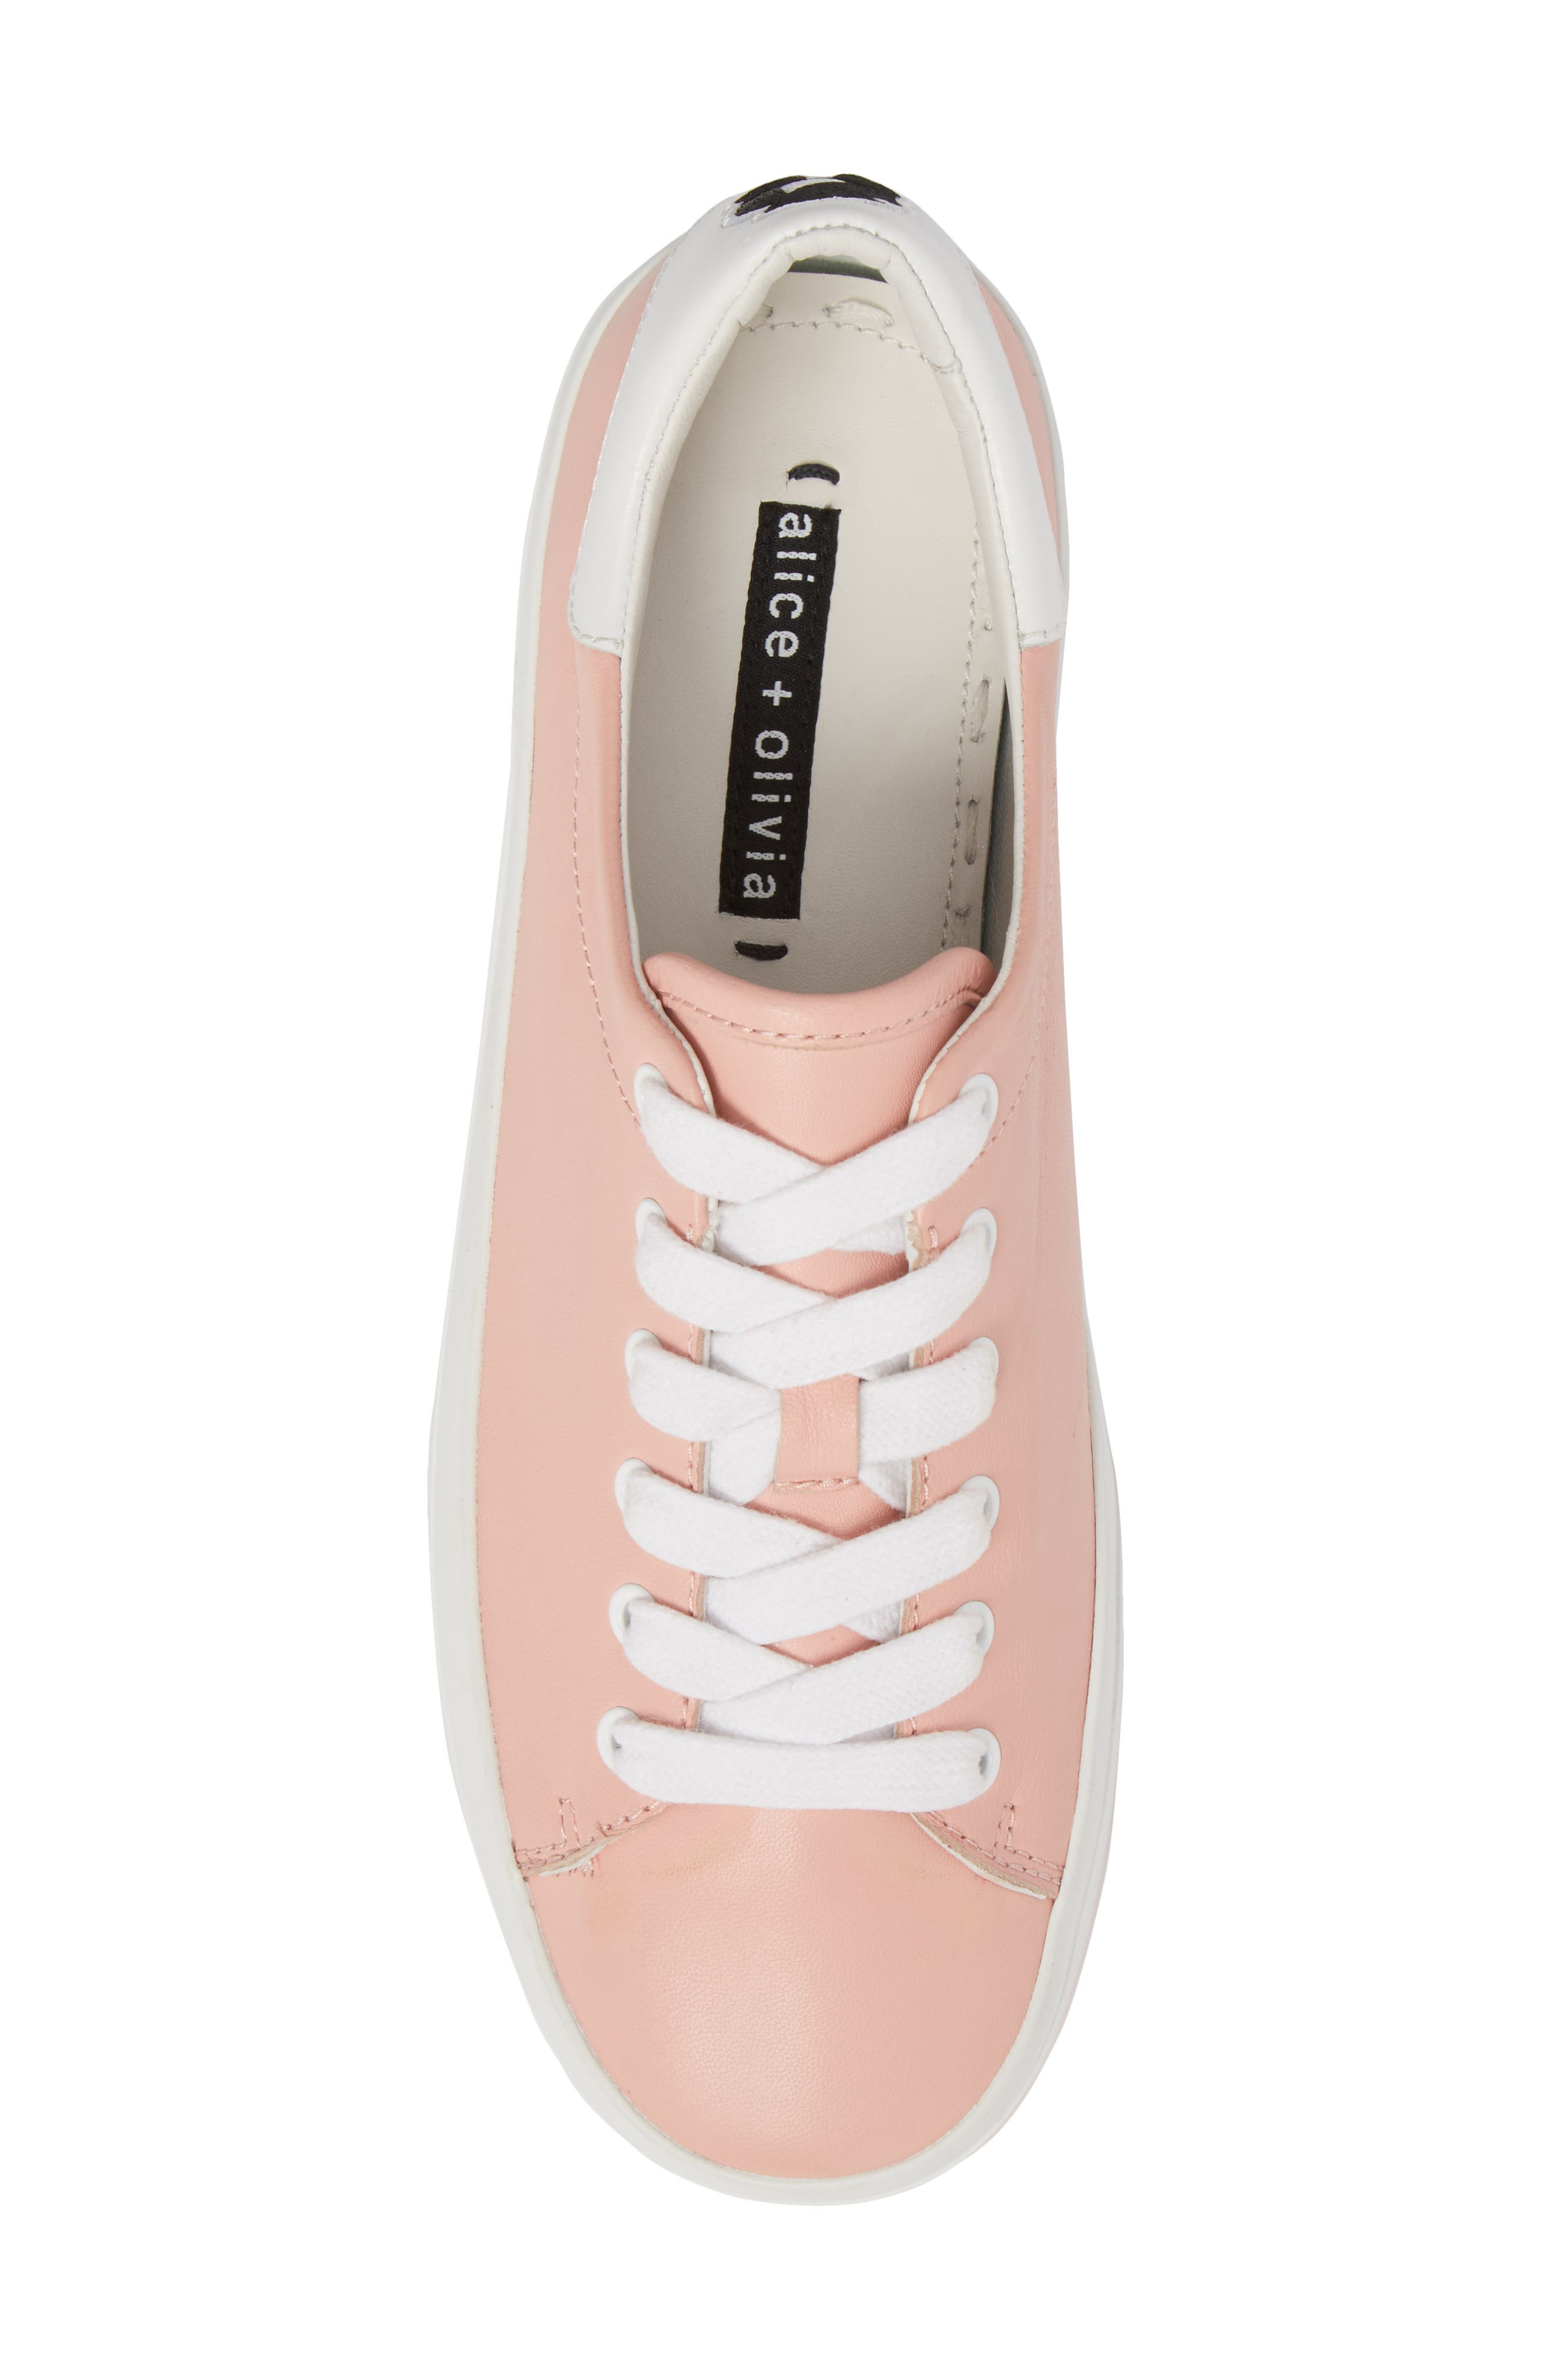 Ezra Flatform Sneaker,                             Alternate thumbnail 4, color,                             Perfect Pink / Pure White